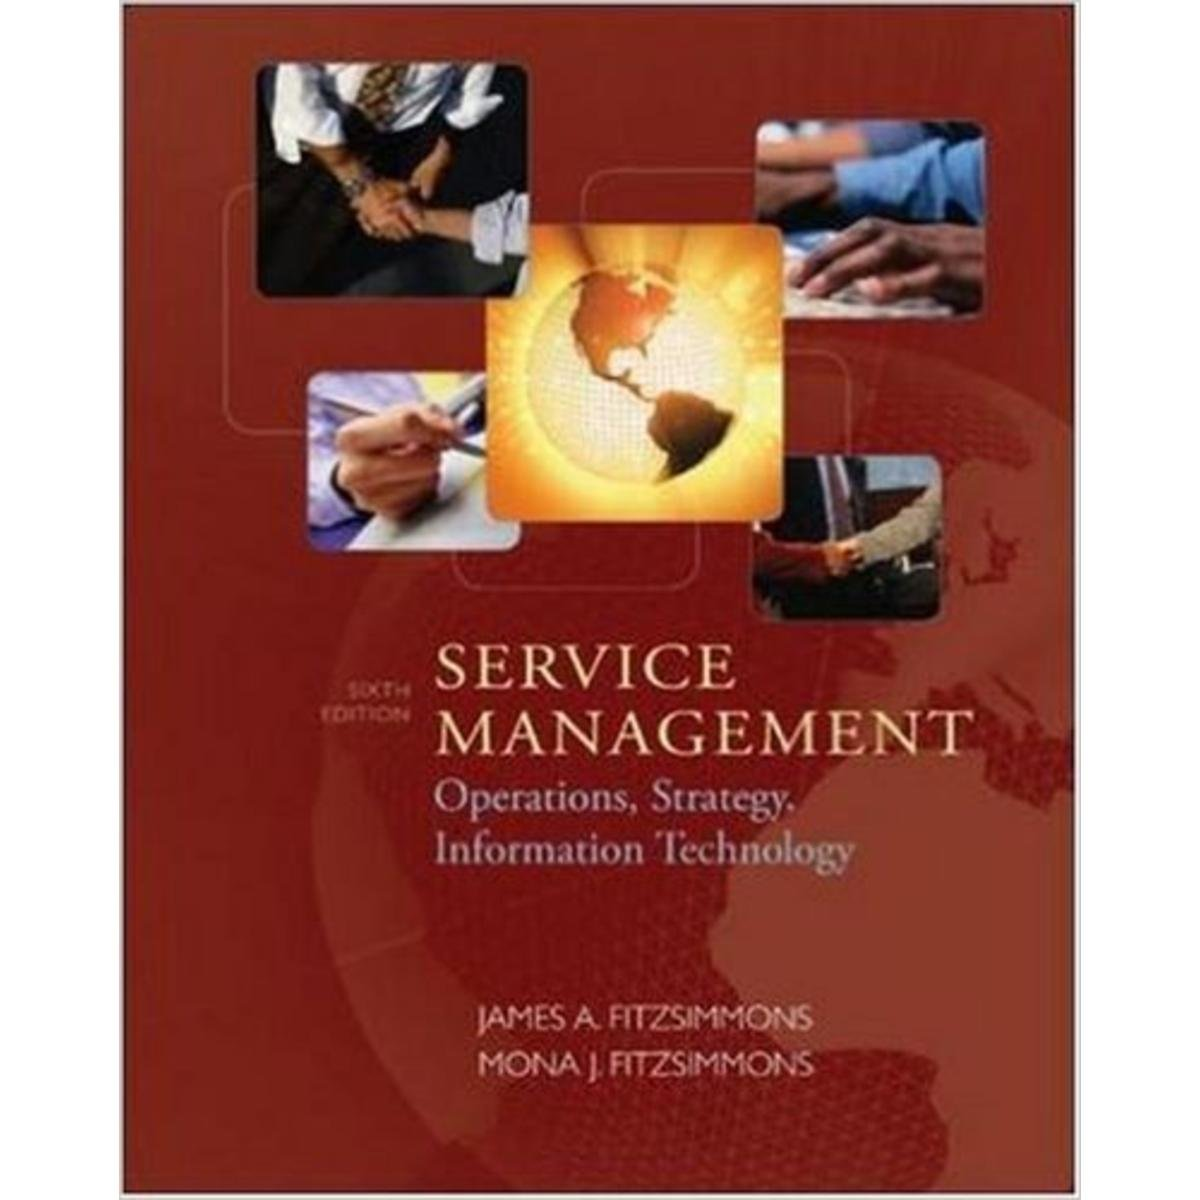 Service Management: Operations, Strategy, Information Technology with  CDROM: Amazon.co.uk: James A. Fitzsimmons, Mona J. Fitzsimmons: Books